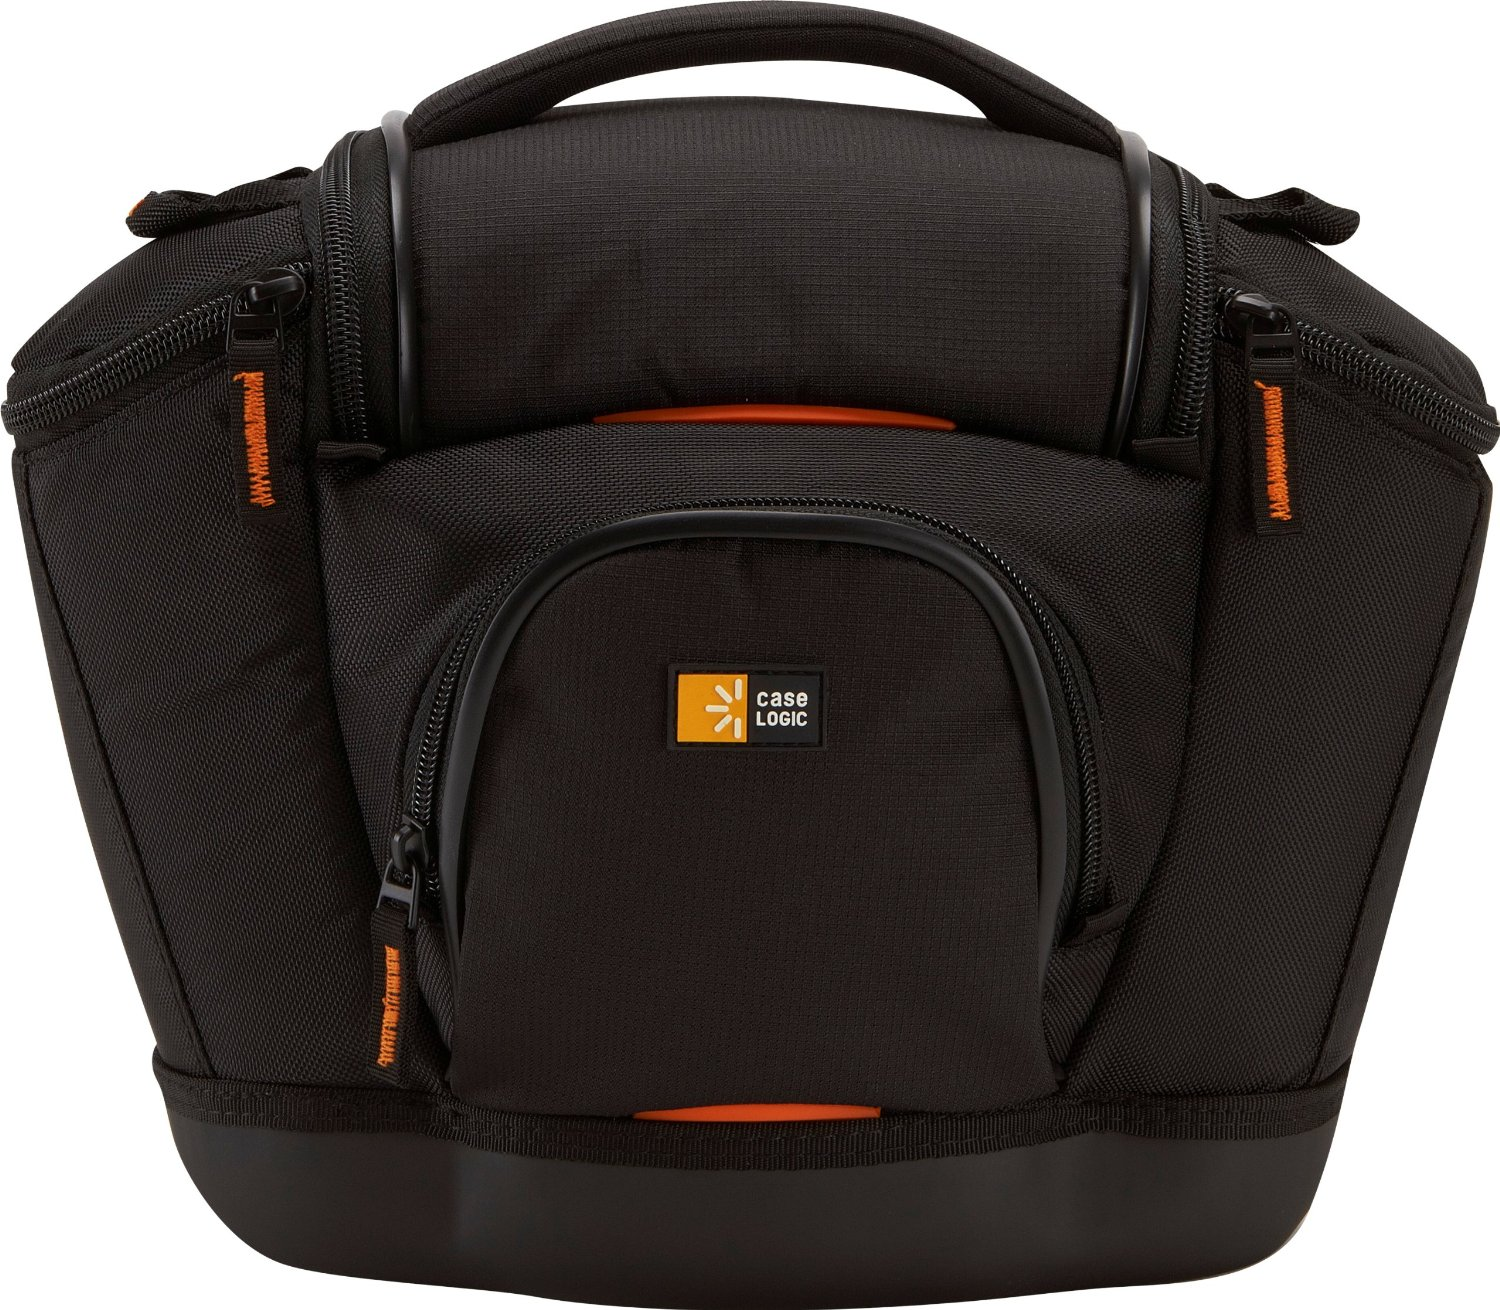 Case Logic Medium SLR Camera Bag SLRC-202_BLACK